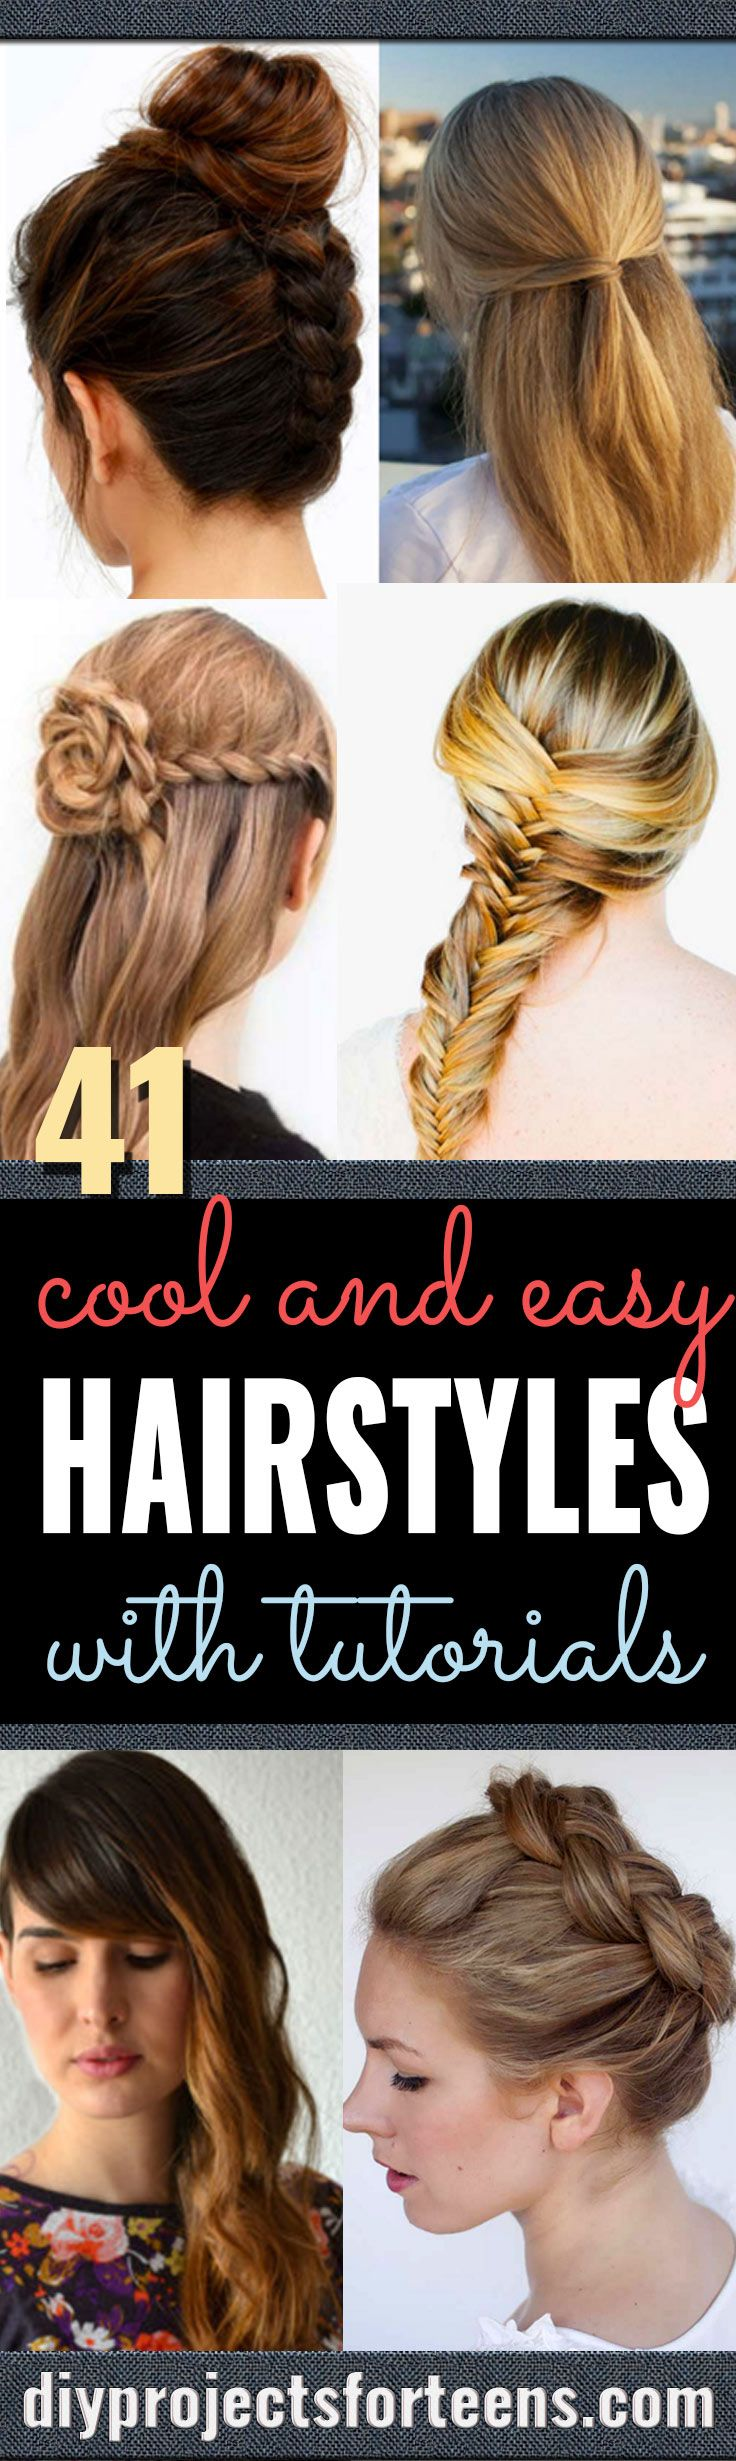 Pleasant 1000 Ideas About Quick School Hairstyles On Pinterest Easy Hairstyles For Women Draintrainus